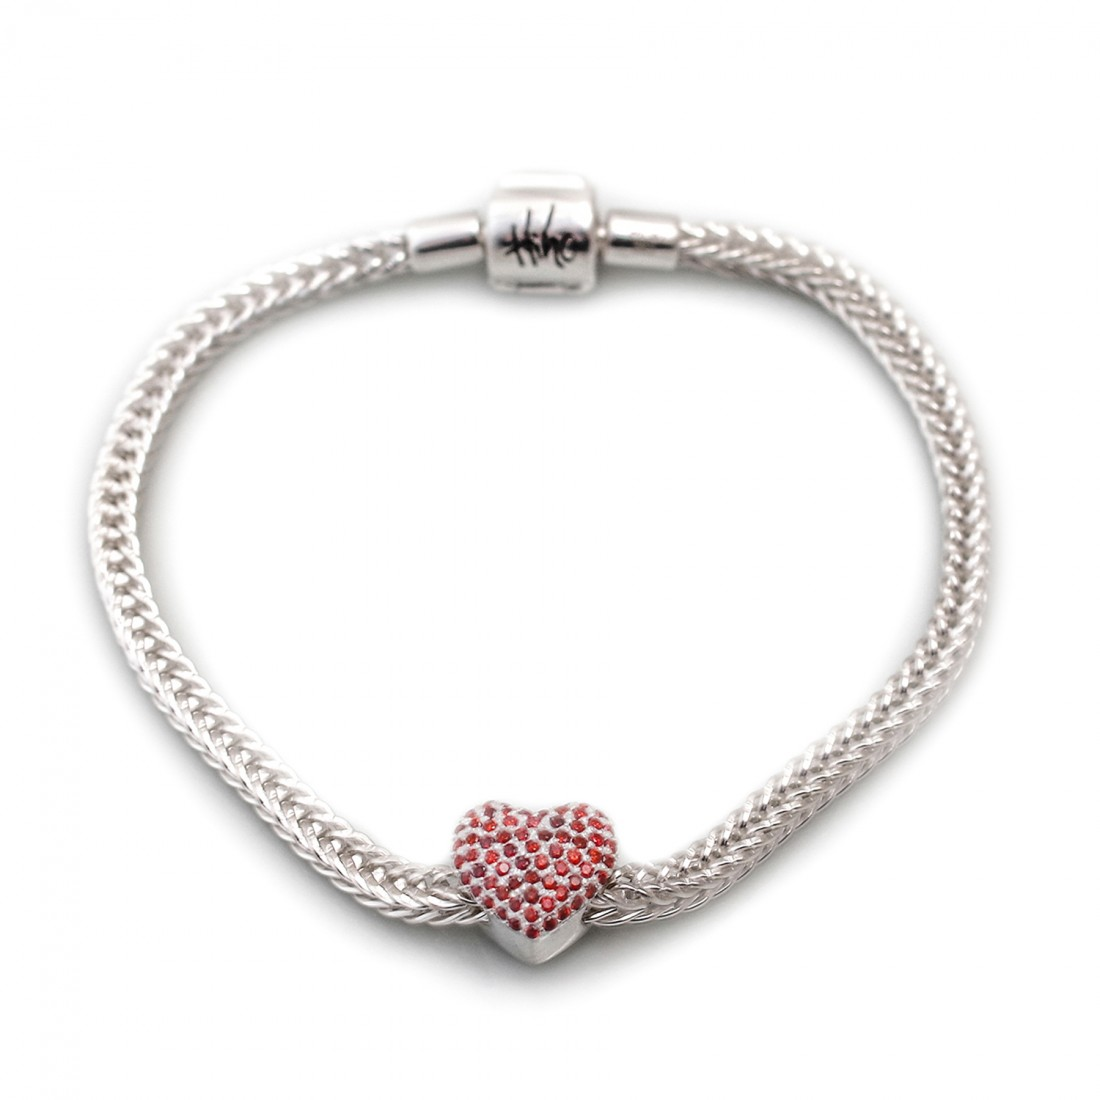 Exclusive Sterling Silver Foxtail Bracelet With Love Heart Roller Charm Bead